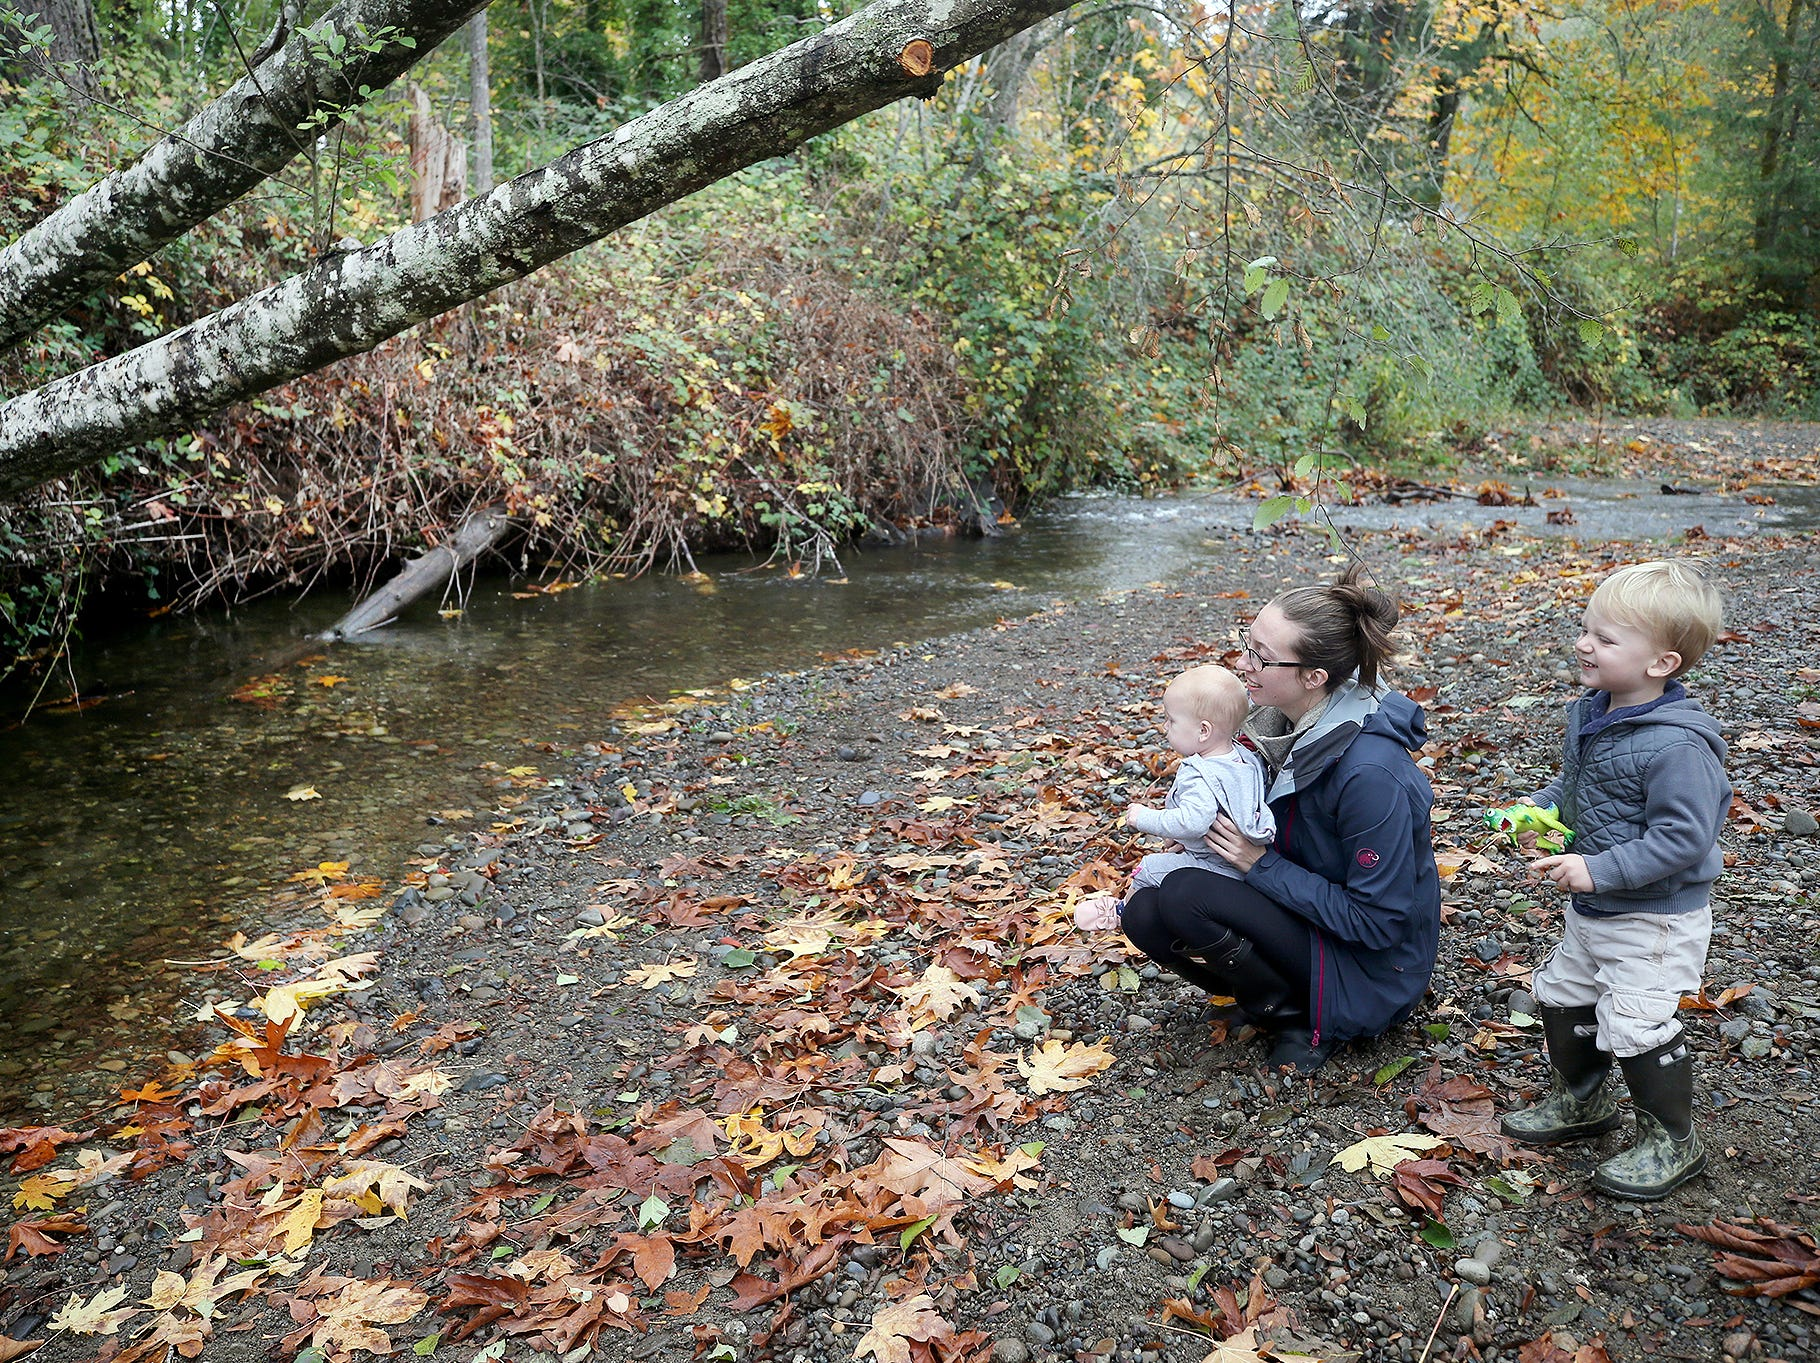 Holly Rogers of Poulsbo watches as the chum salmon swim upstream at the Chico Salmon Park with her sons Riley, 1, and Luke, 2, on Thursday, November, 1, 2018.